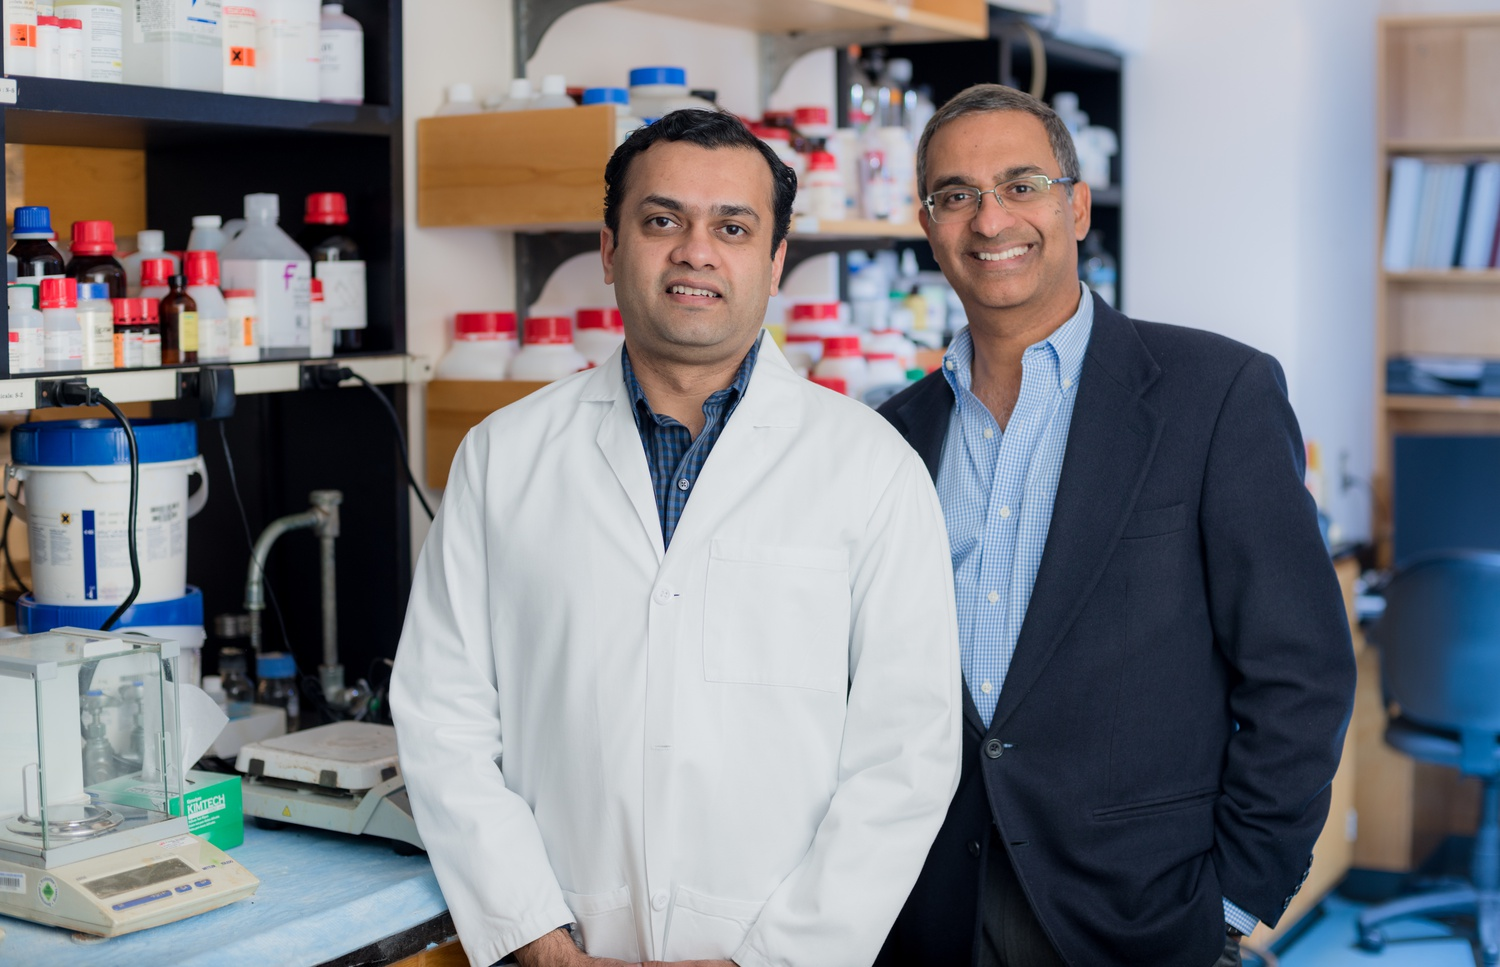 Ramesh A. Shivdasani (right) is a professor at the Harvard Medical School and deputy director of the Dana-Farber Cancer Institute. Unmesh Jadhav (left) is a post-doctoral fellow.